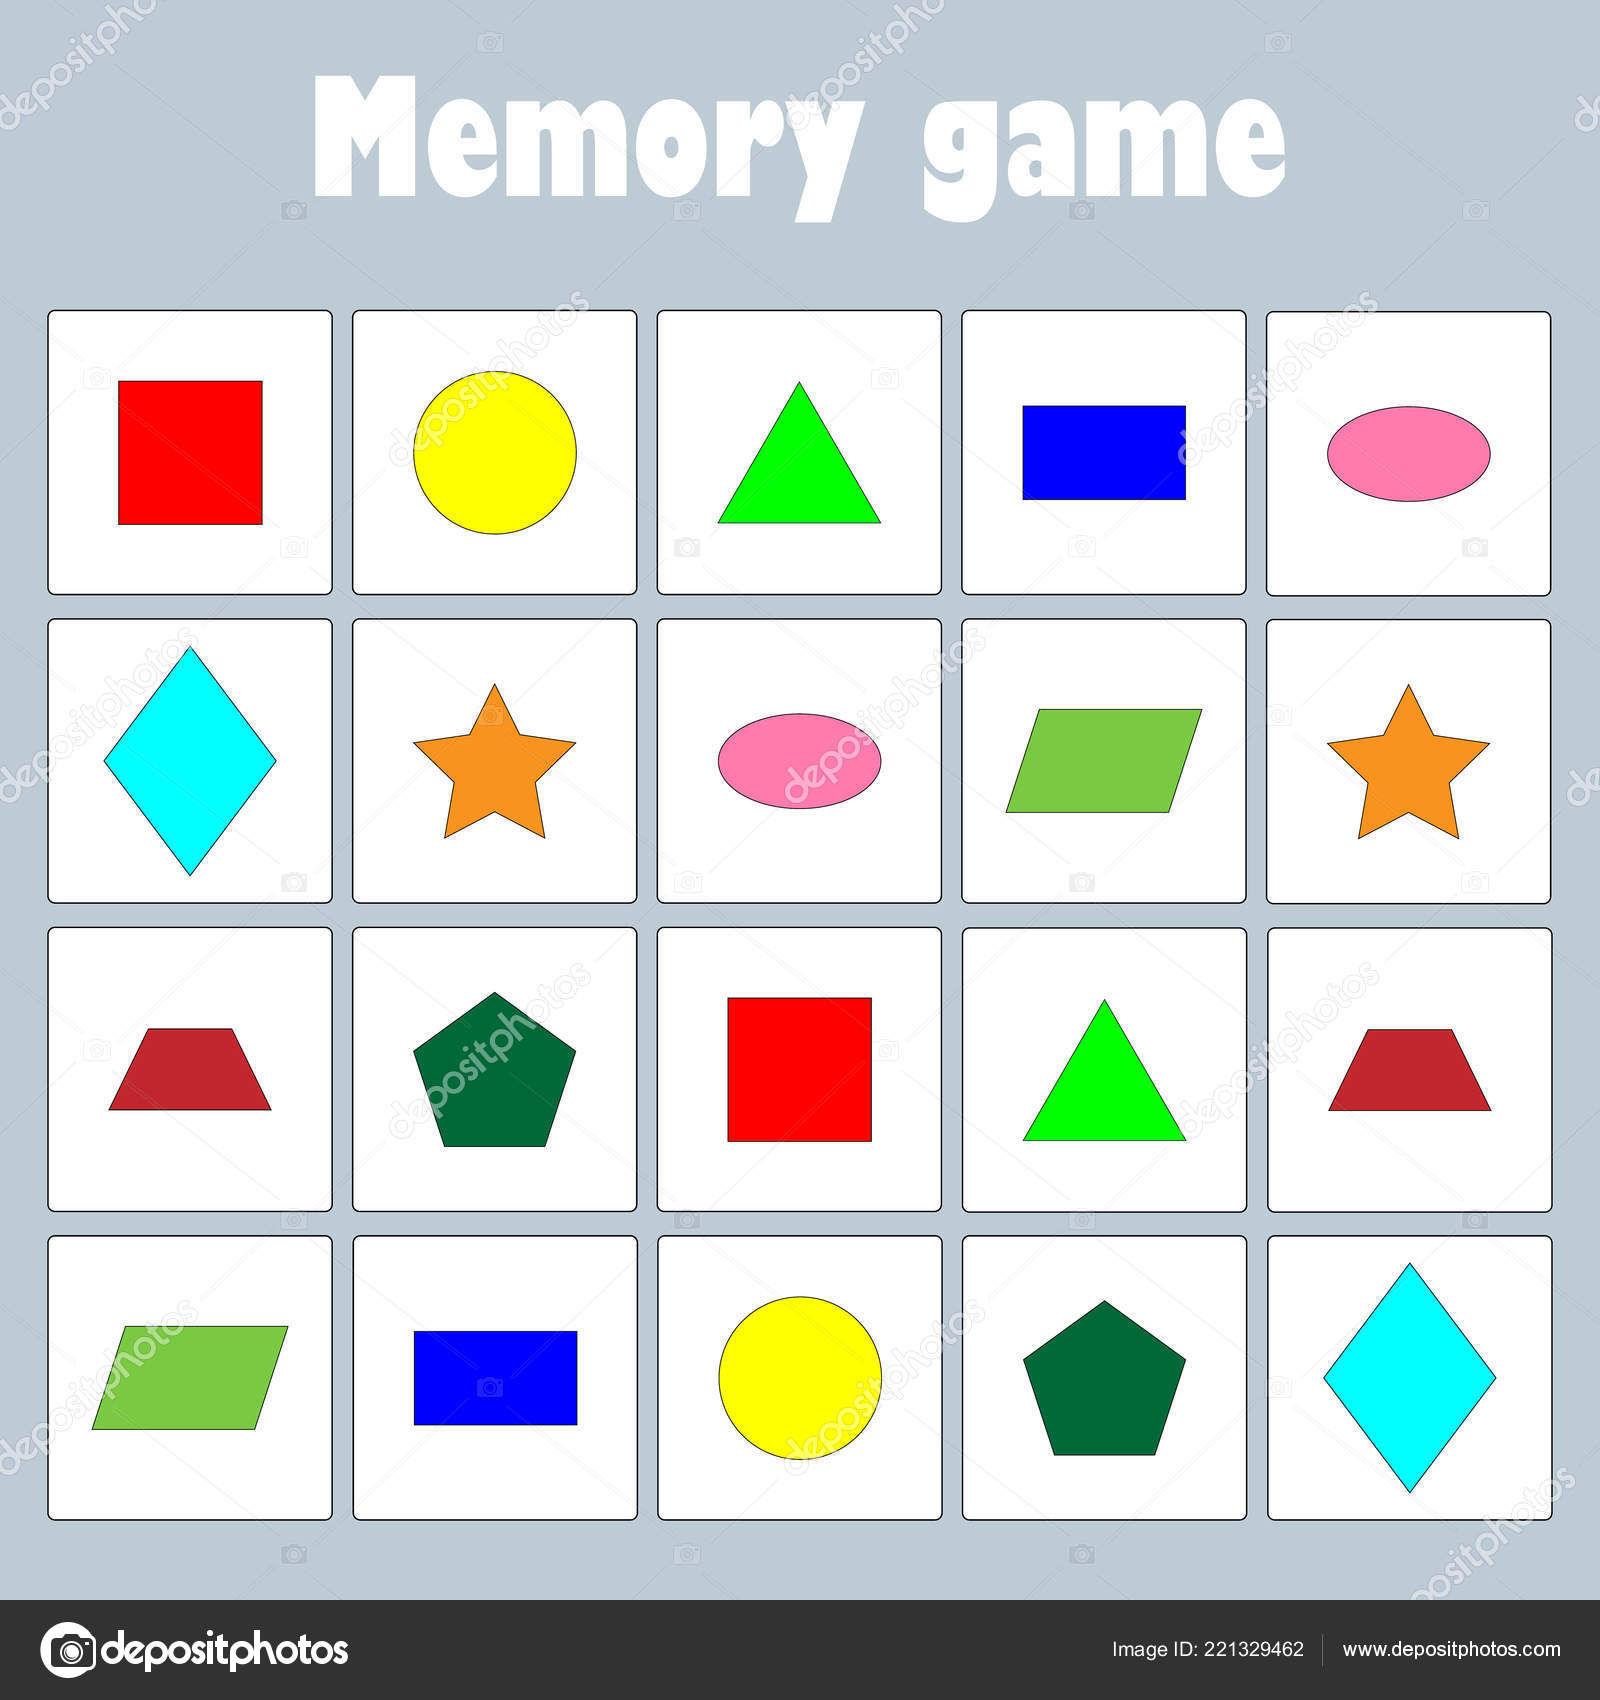 memory game pictures geometric shapes children fun education game